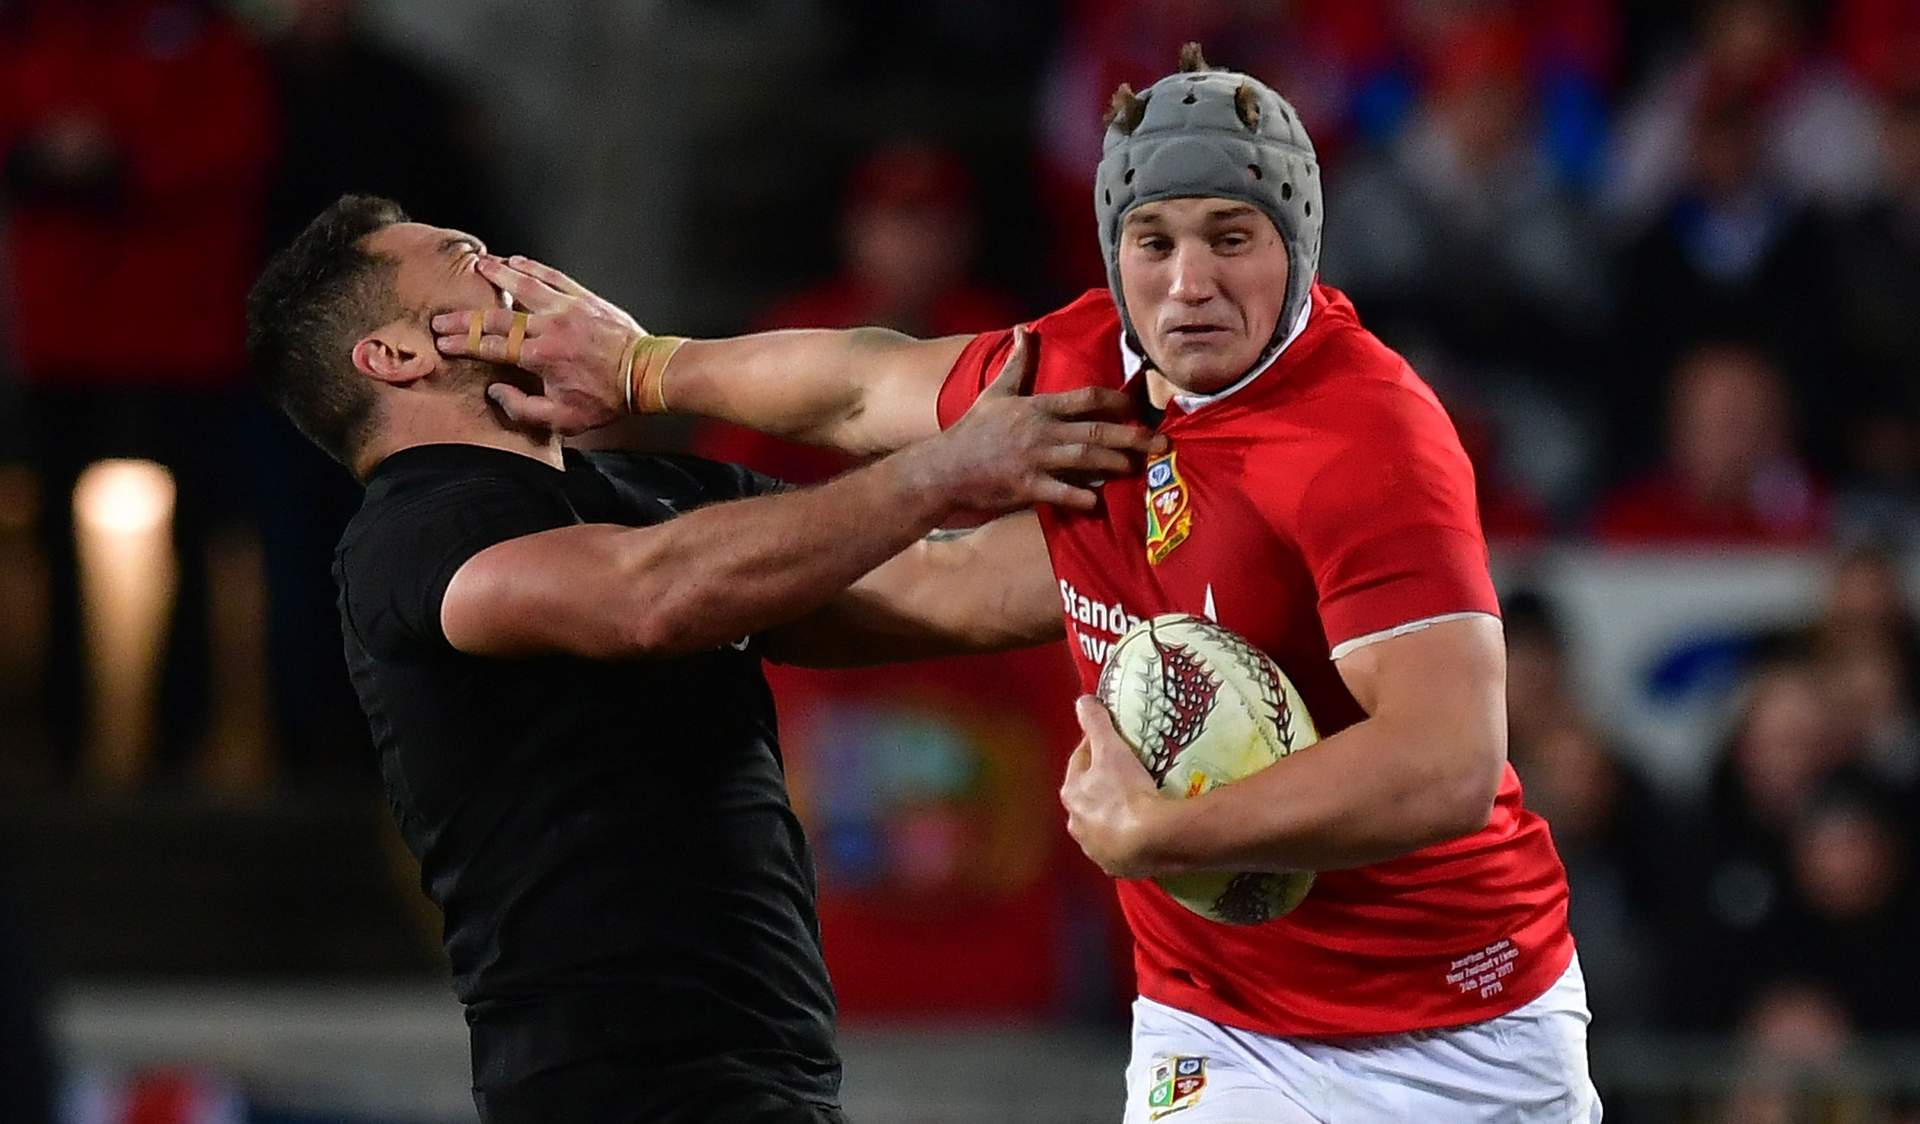 REPORT: First blood to All Blacks